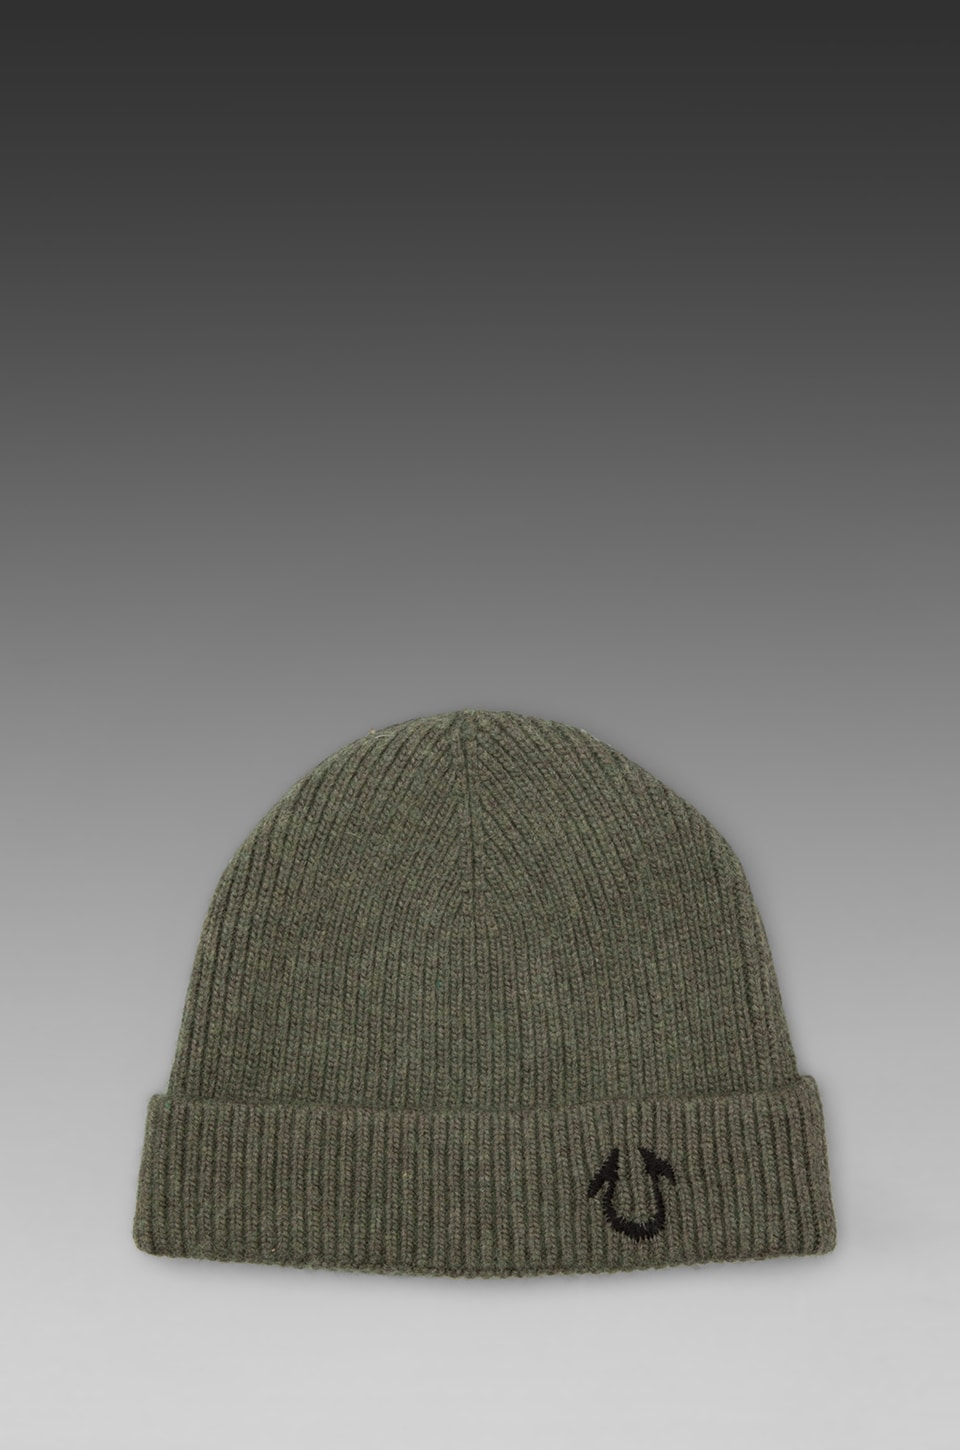 True Religion Solid Watchcap in Military